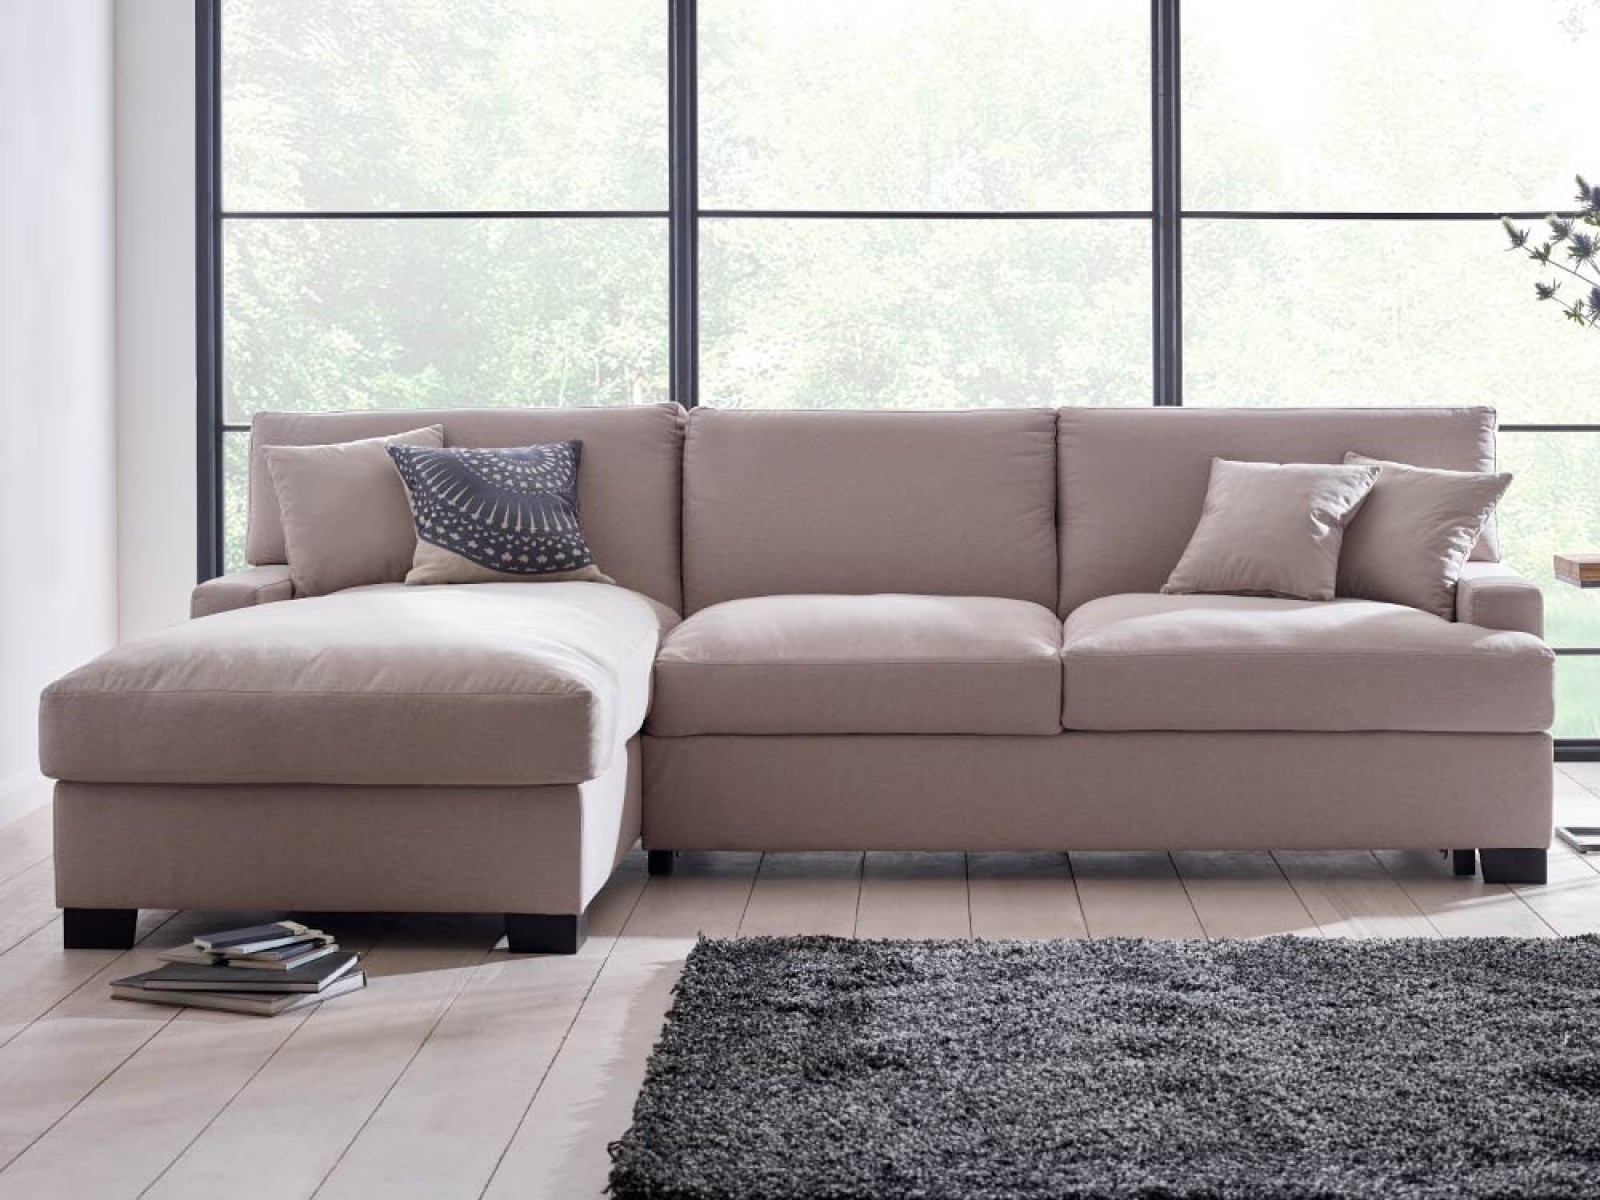 Well Known Jysk Sectional Sofas With Regard To Sofa : Jysk Corner Sofa Bed Corner Sofa Bed Green Corner Sofa Bed (View 9 of 20)